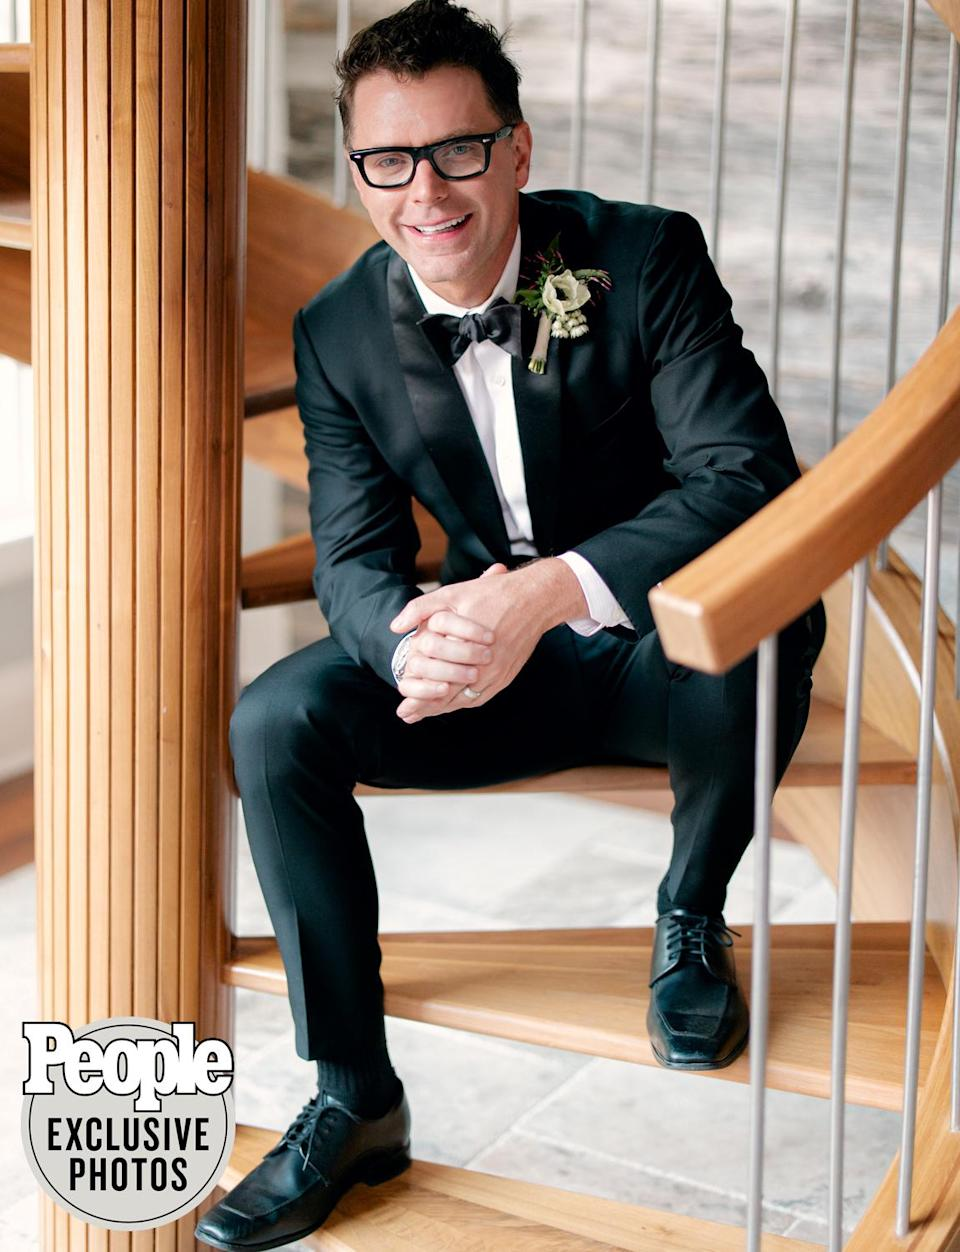 """<p>For their wedding, Bones wore a custom suit with bow tie by <a href=""""https://altonlane.com/"""" rel=""""nofollow noopener"""" target=""""_blank"""" data-ylk=""""slk:Alton Lane"""" class=""""link rapid-noclick-resp"""">Alton Lane</a>, preferring to """"blend in"""" with a classic look so Parker could """"come down and own the show"""" in her gown.</p>"""